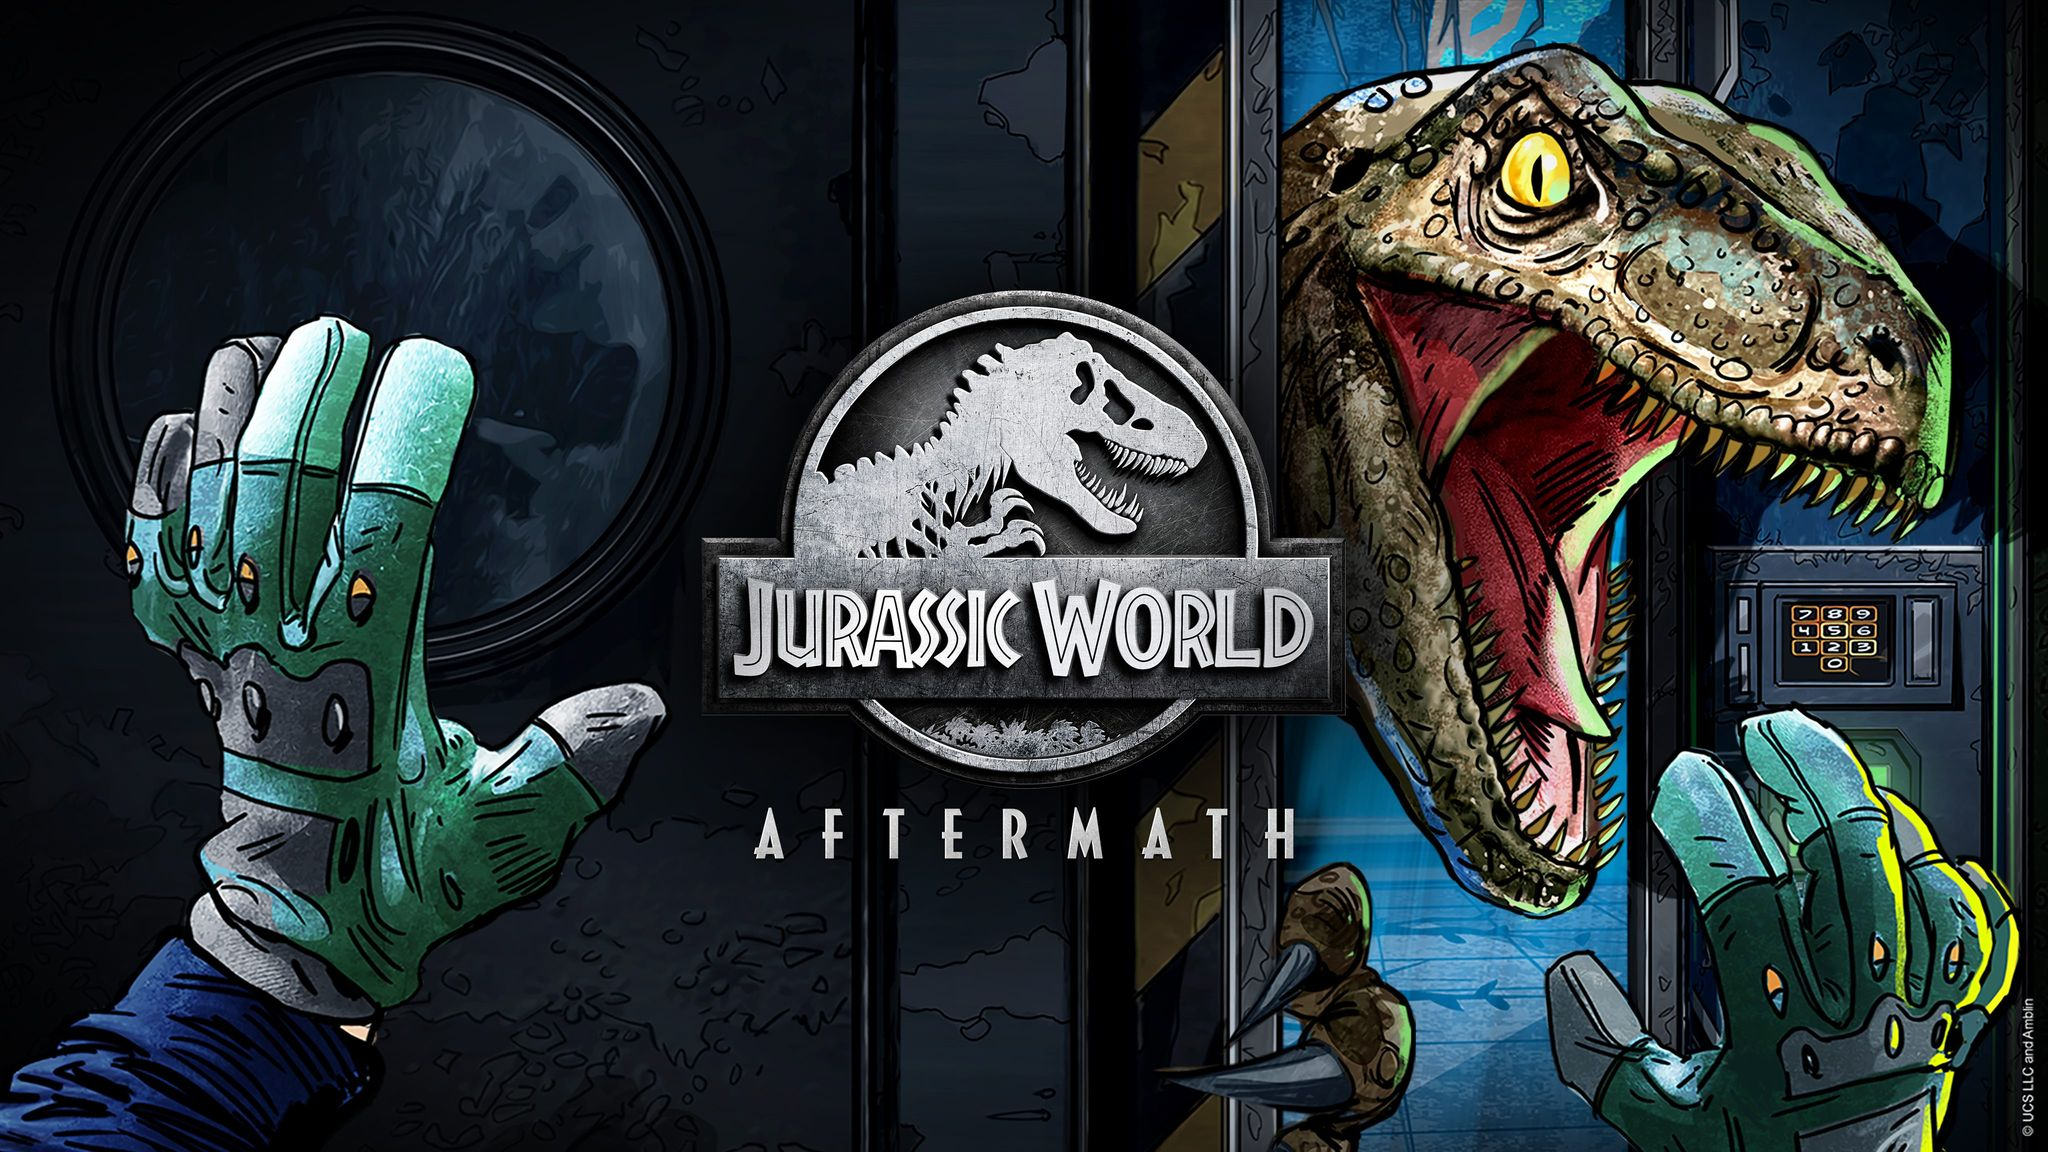 New VR Video Game 'Jurassic World Aftermath' Announced for Oculus Quest